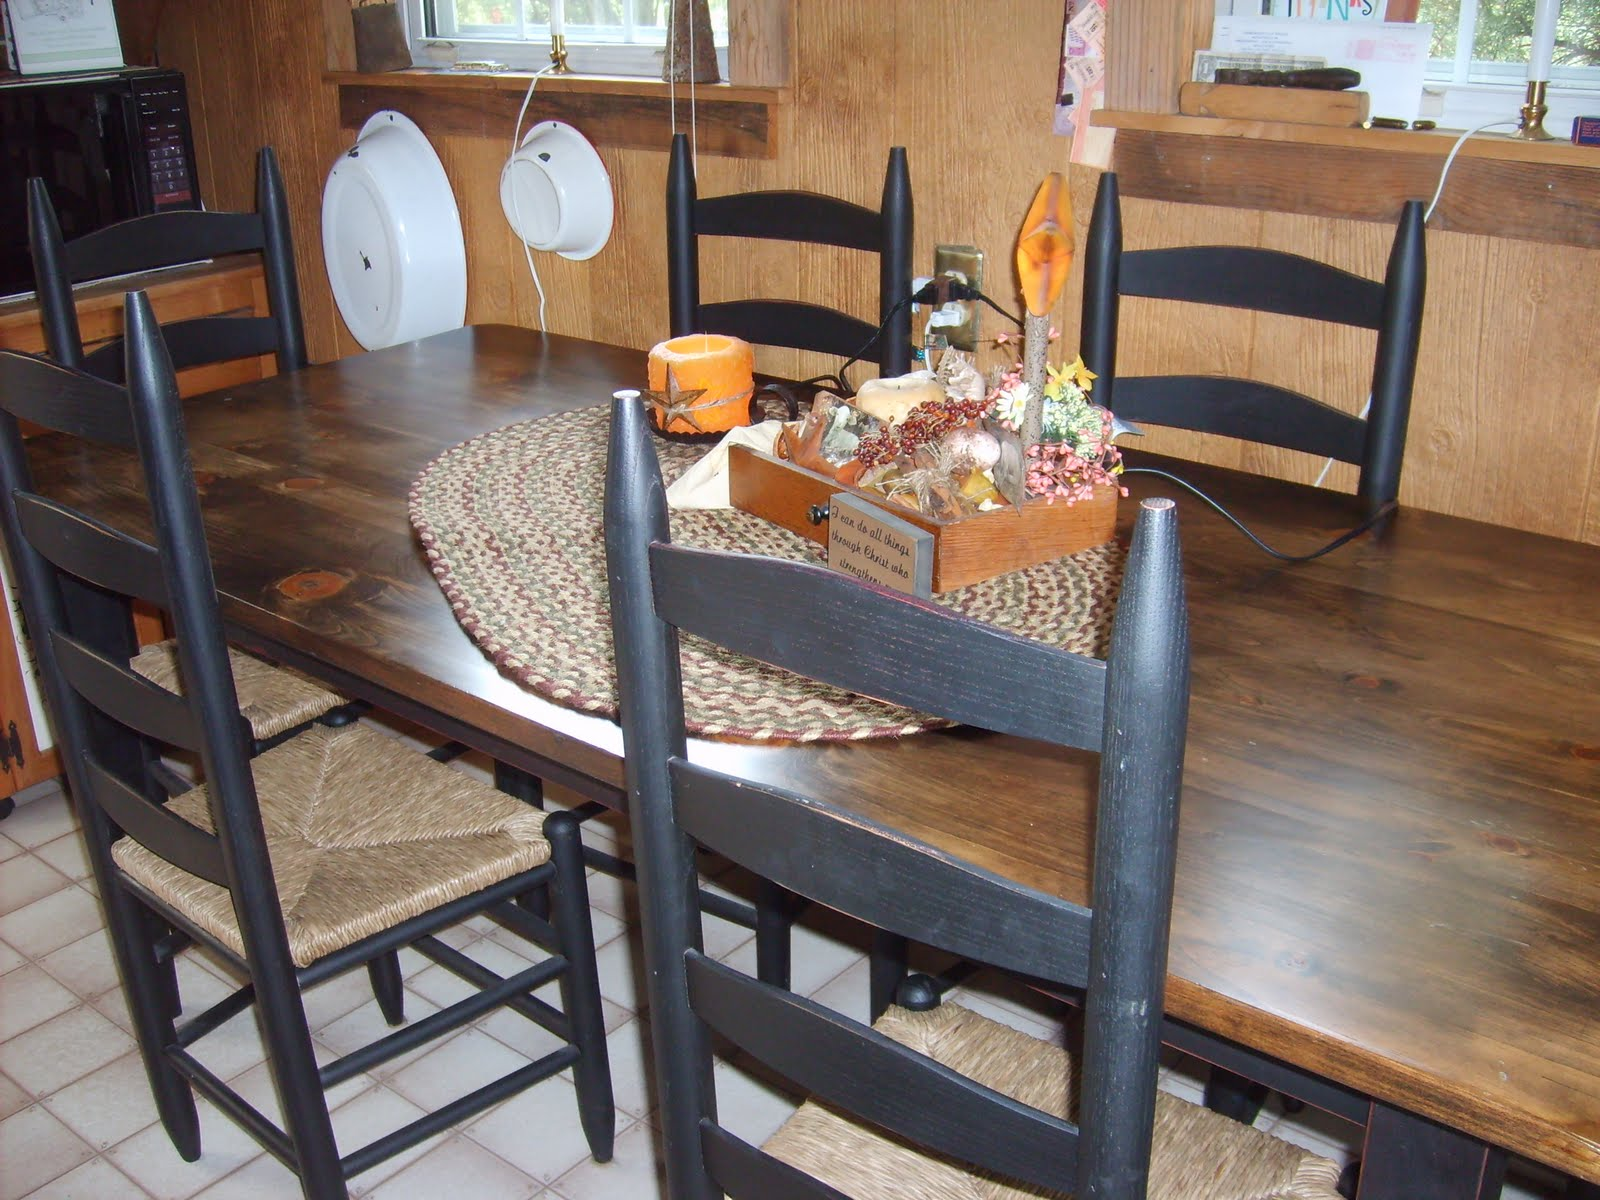 amish kitchen tables and chairs With Pride